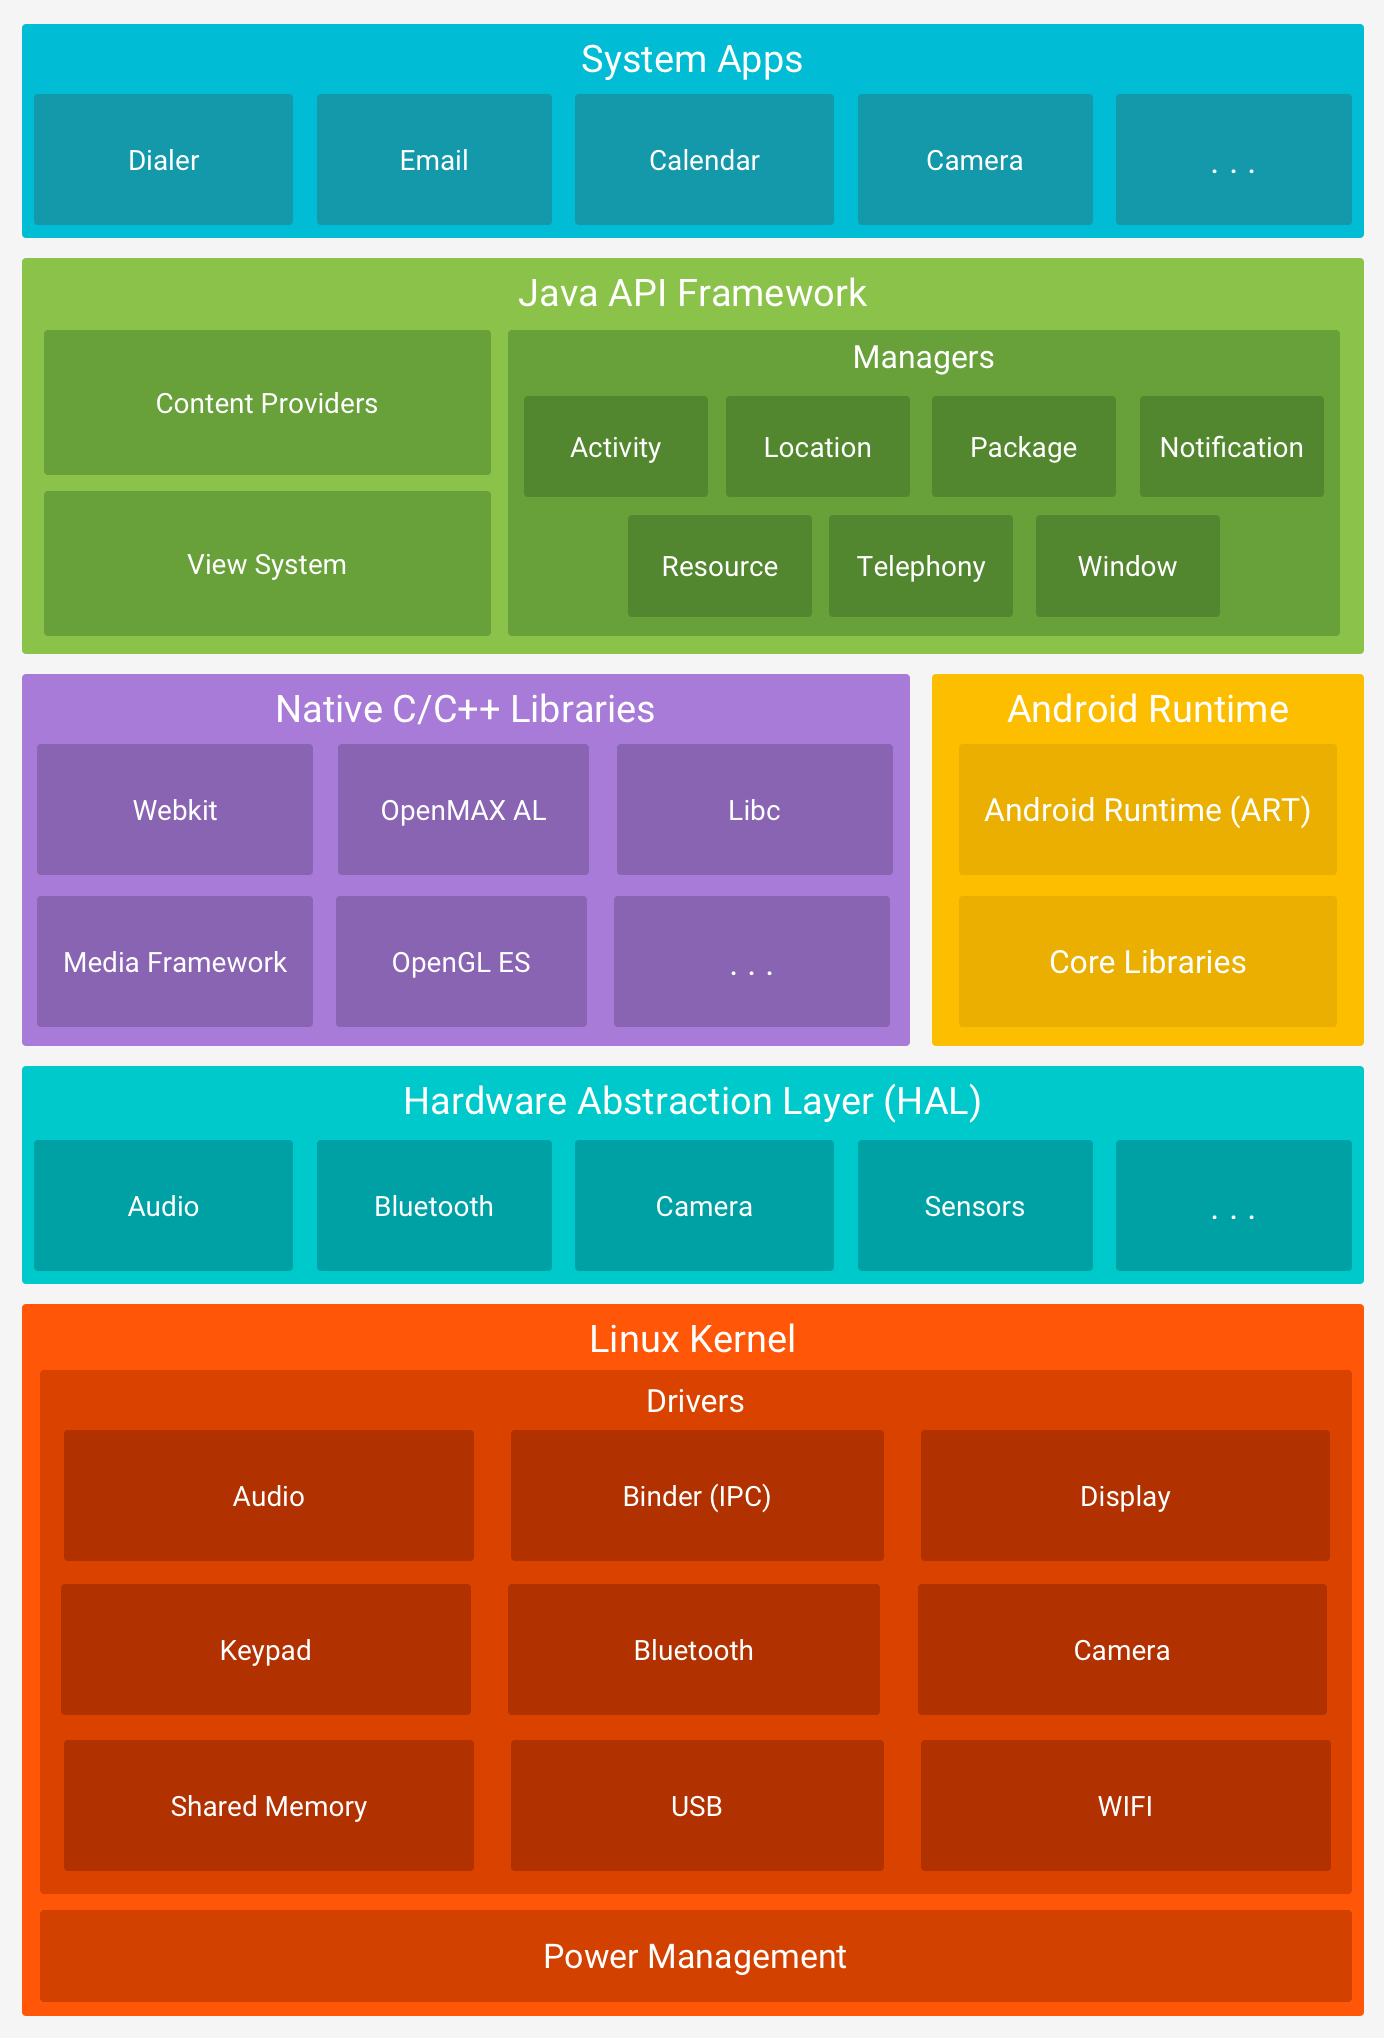 The Android software stack